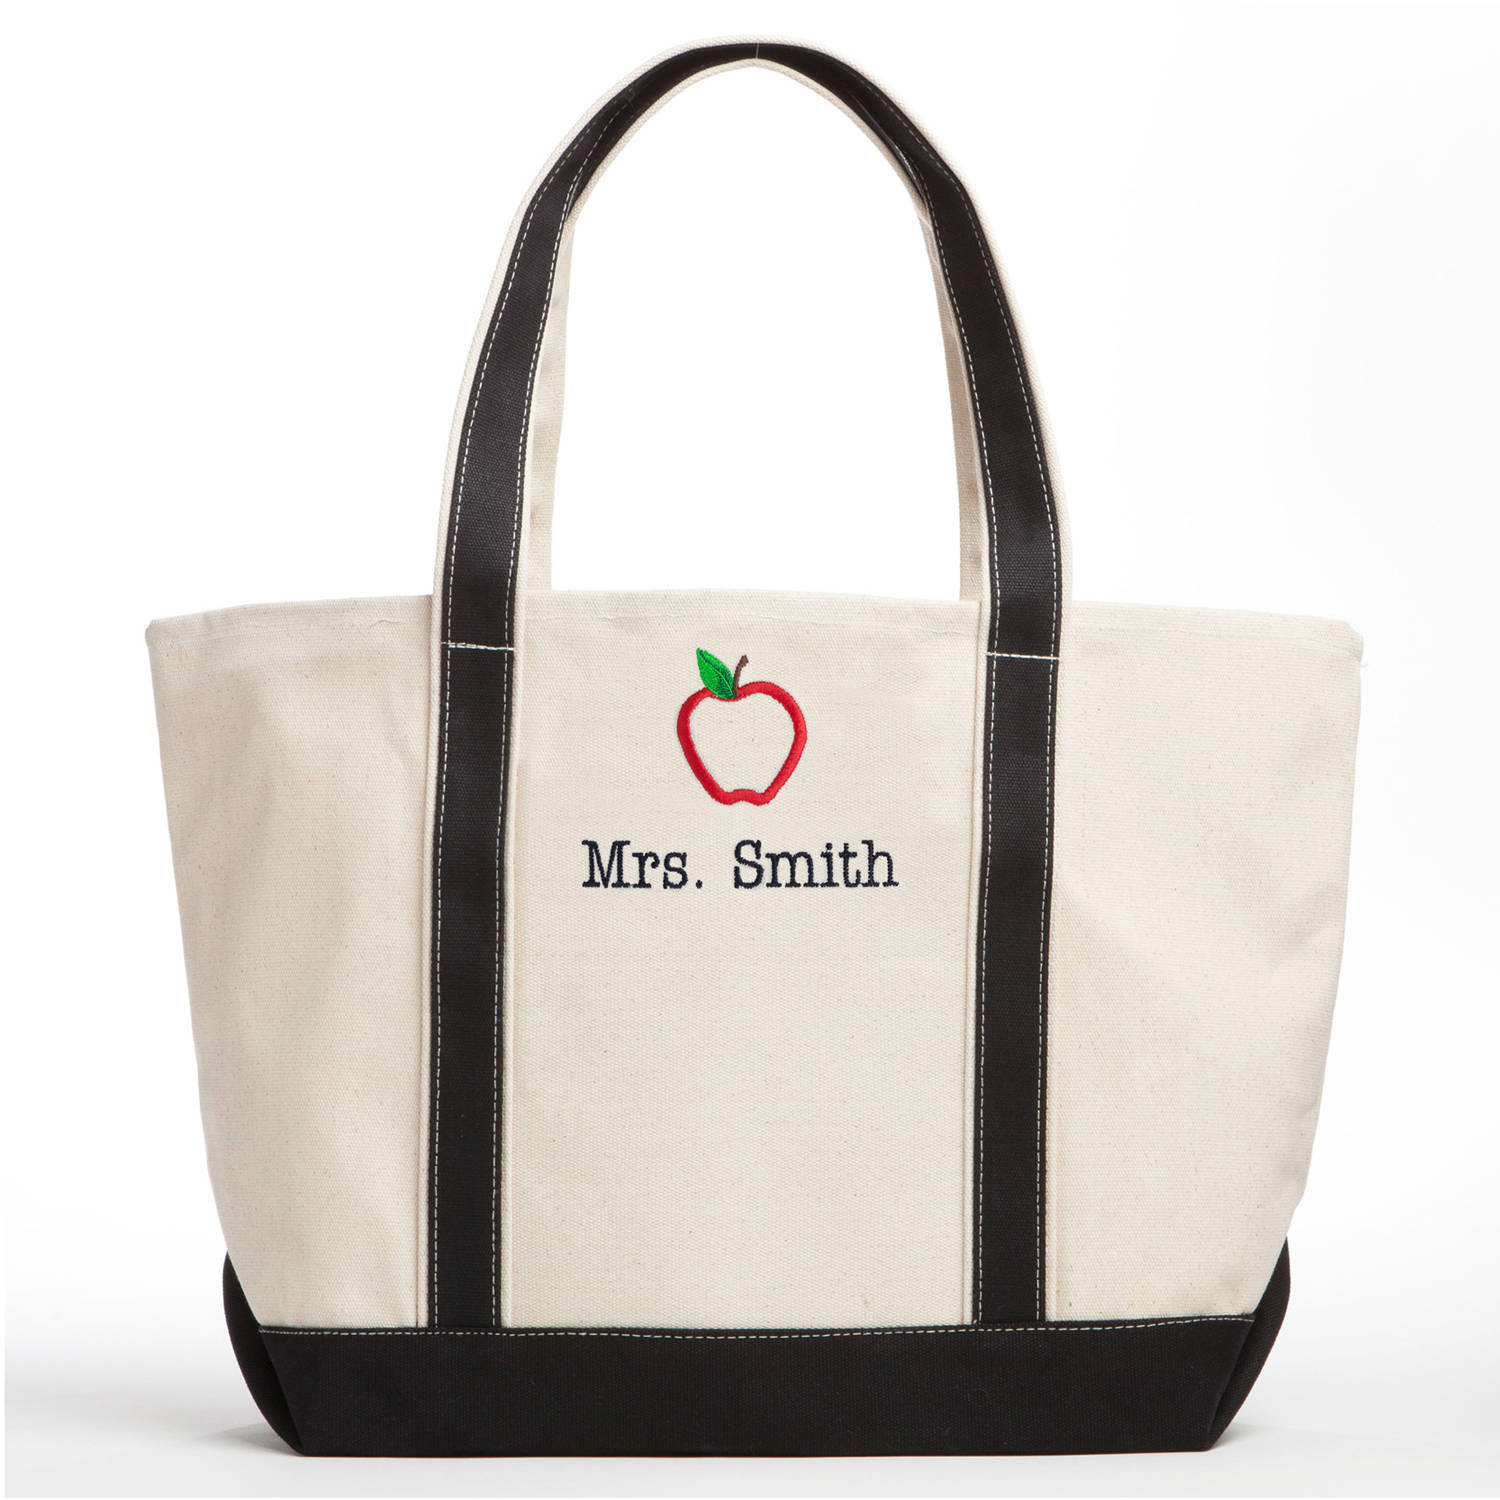 Special Teacher Personalized Tote Bag - Black/Creme with Apple Design